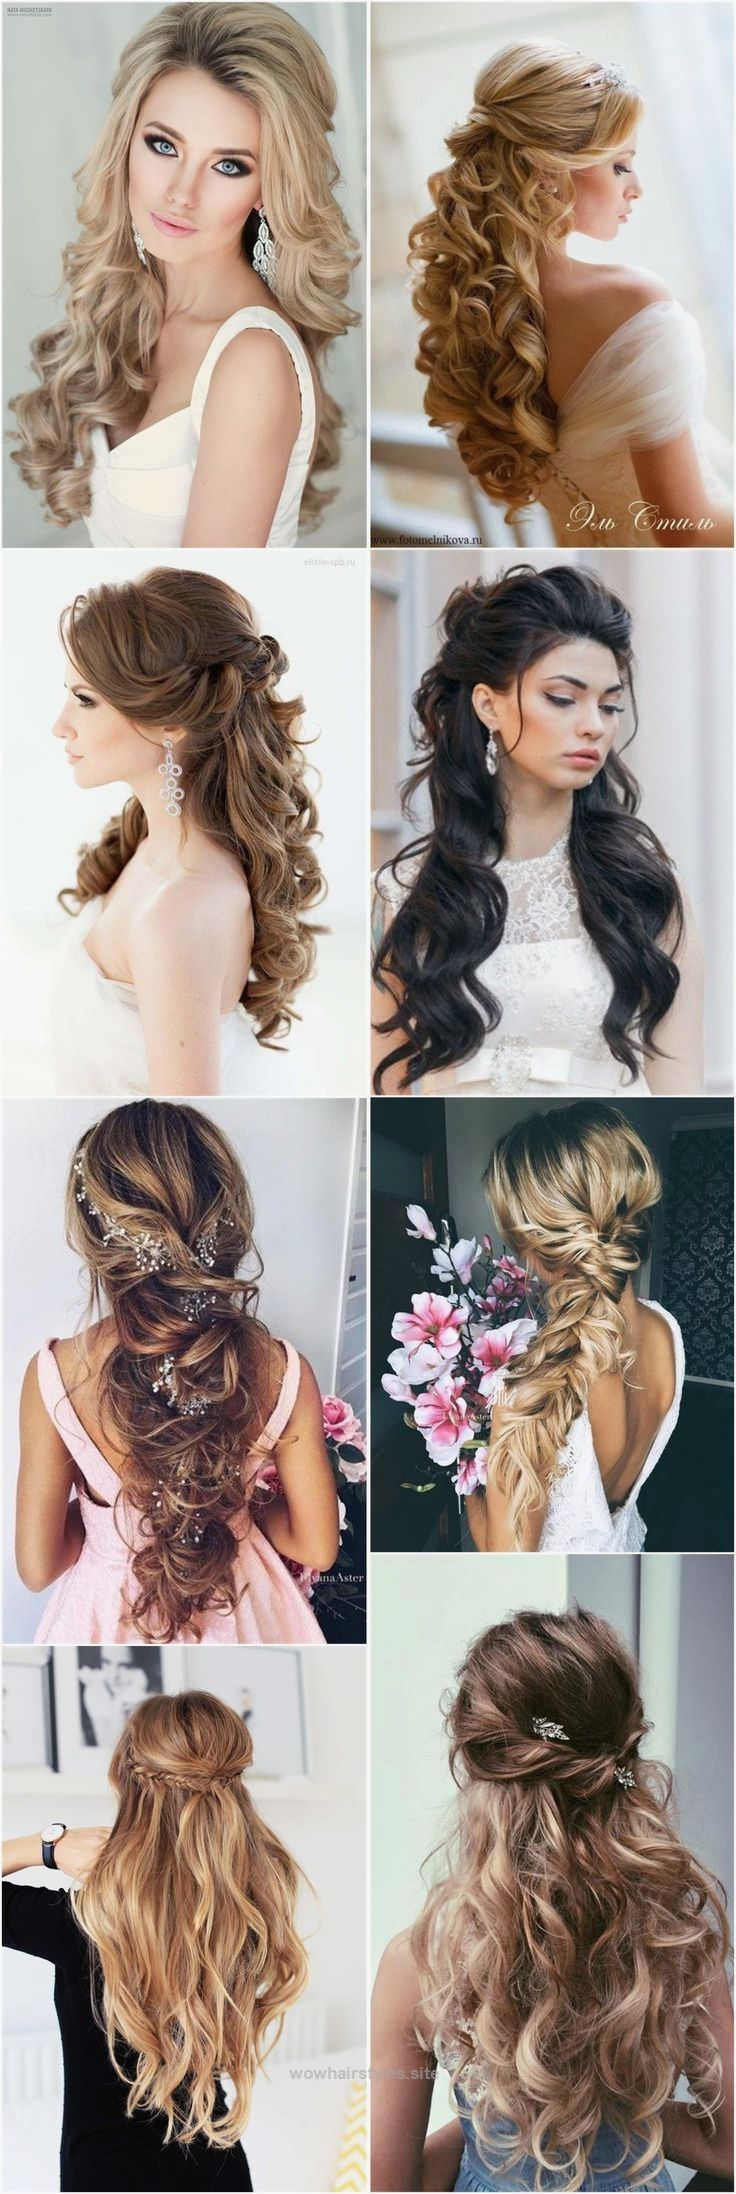 Wedding Hairstyles 187 18 Creative And Unique Wedding Hairstyles For Long Hair Peinados